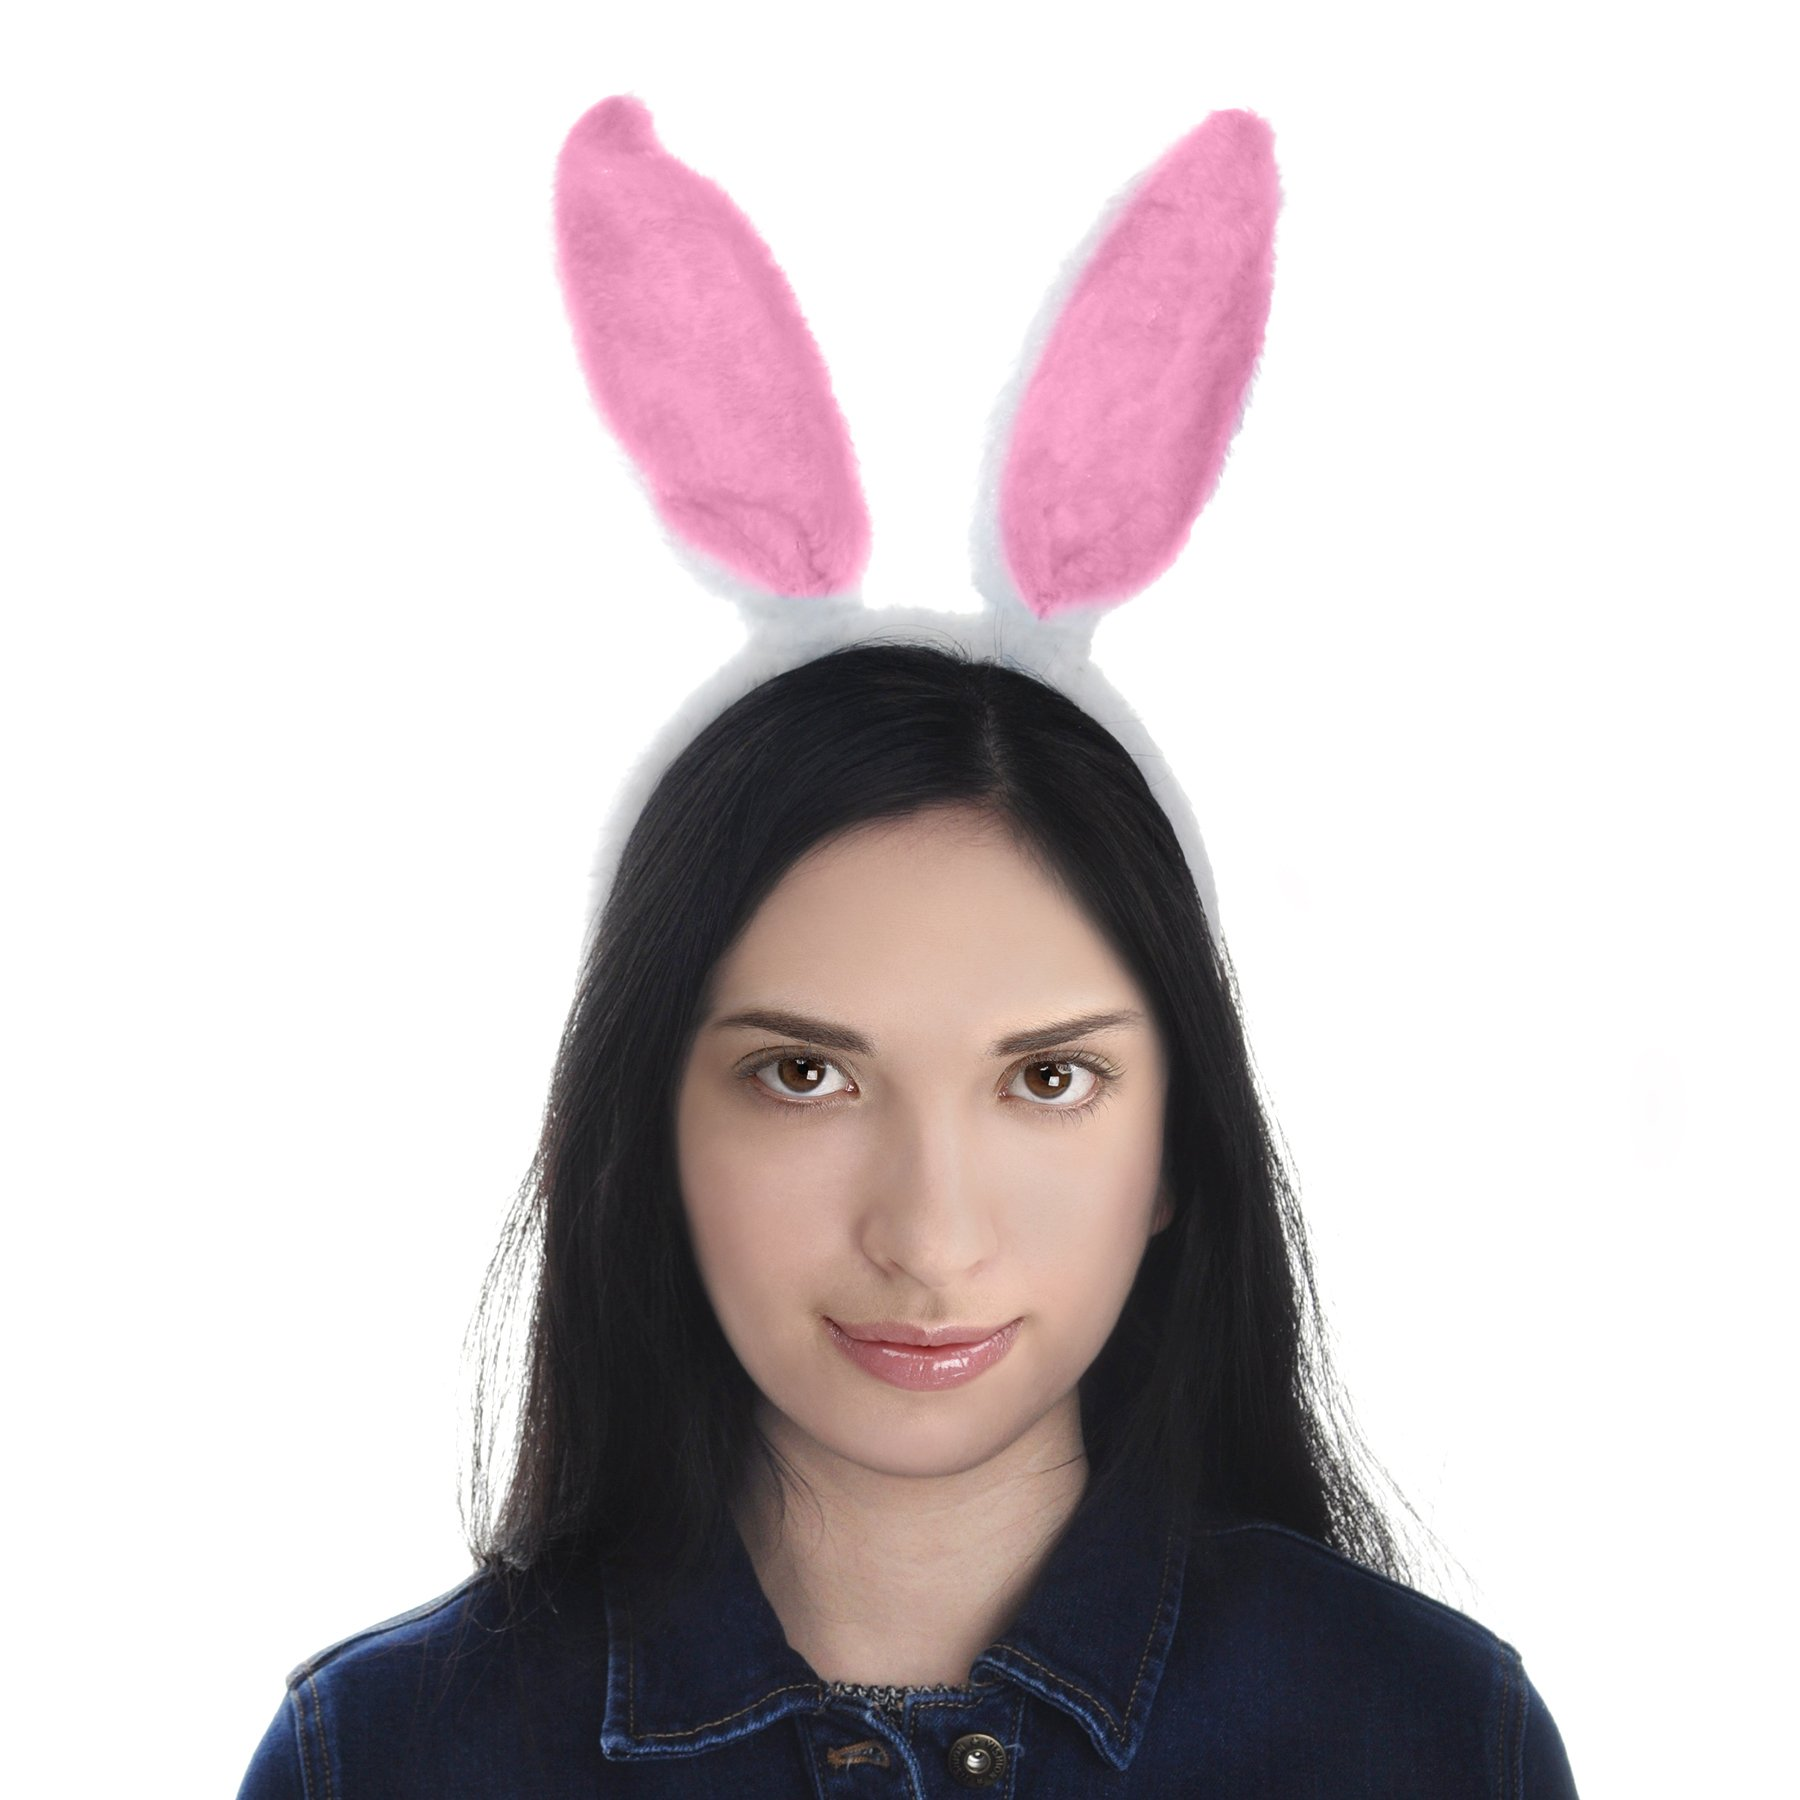 Toptie Easter Bunny Ears Headband, Soft Touch Plush Cosplay Party Suppliers-White-1pc by TOPTIE (Image #6)